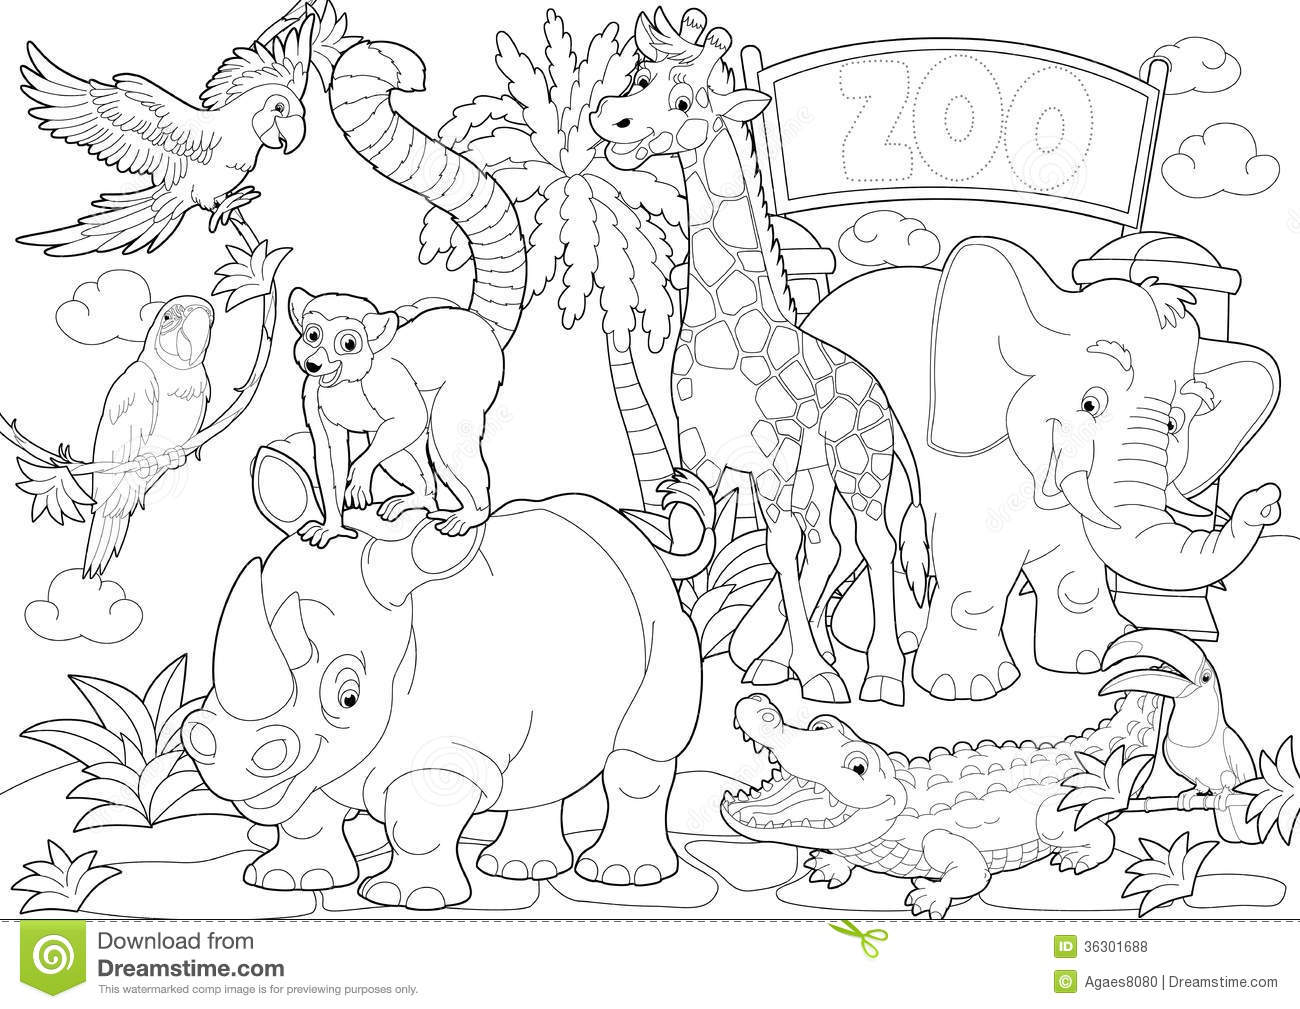 Coloring Home  Tons of Free Coloring Pages  Coloring Home